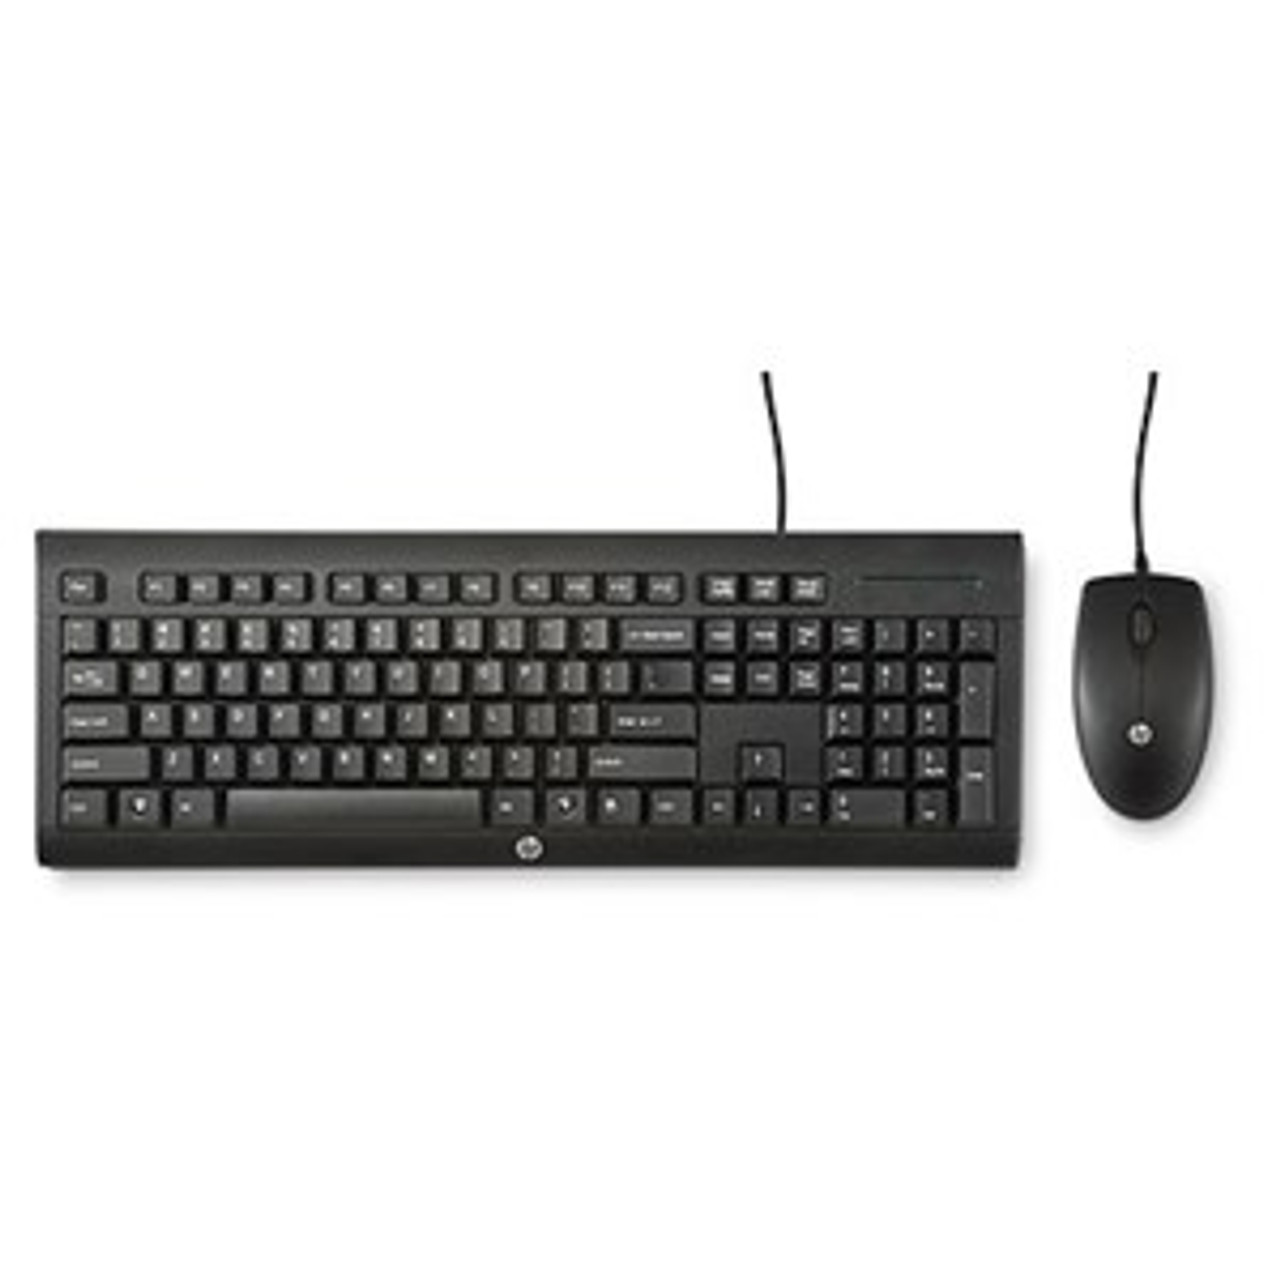 Product image for HP C2500 Desktop keyboard | CX Computer Superstore